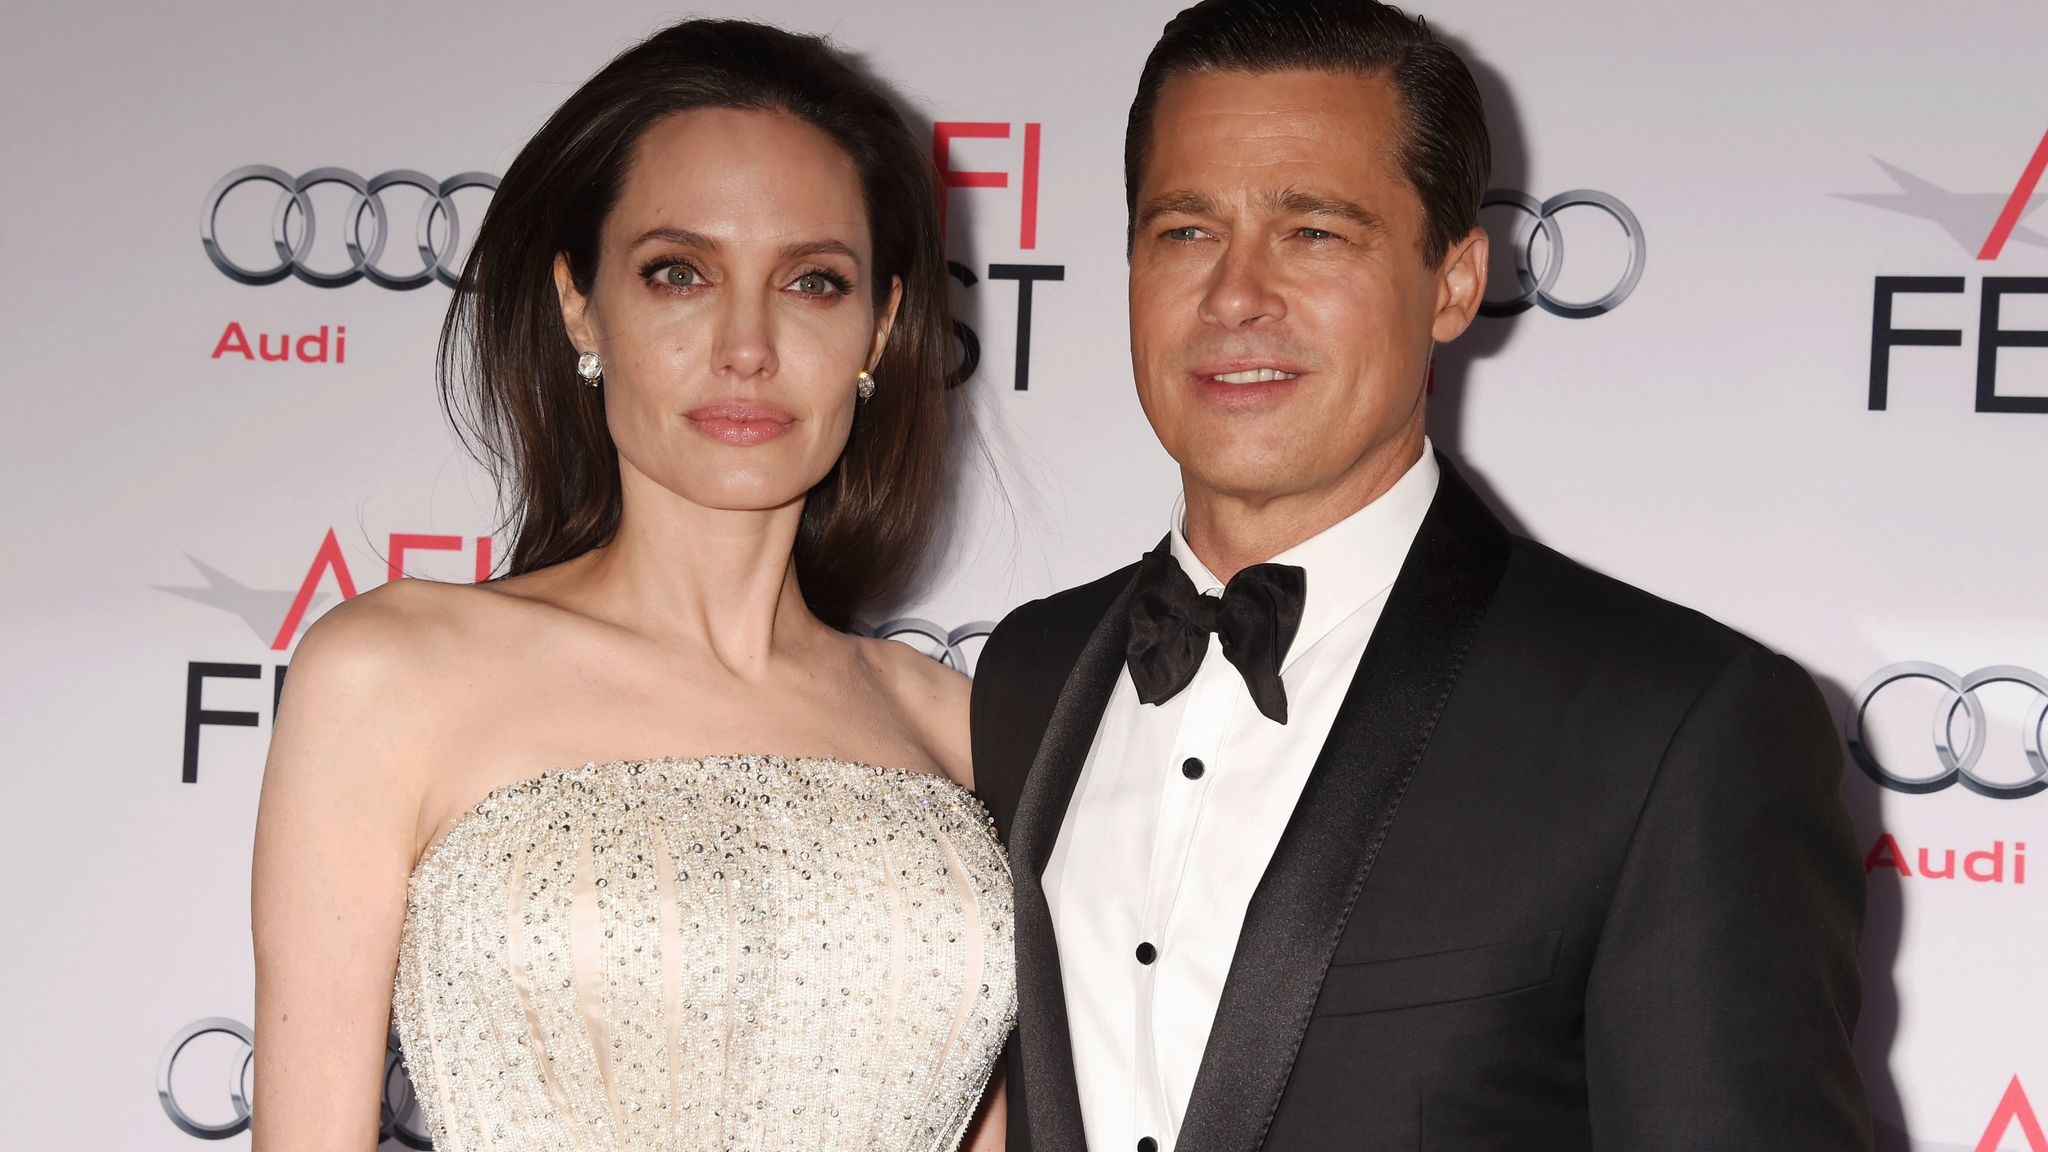 Angelina Jolie Reveals She Divorced Brad Pitt For The Wellbeing Of Her Family Ents Arts News Sky News